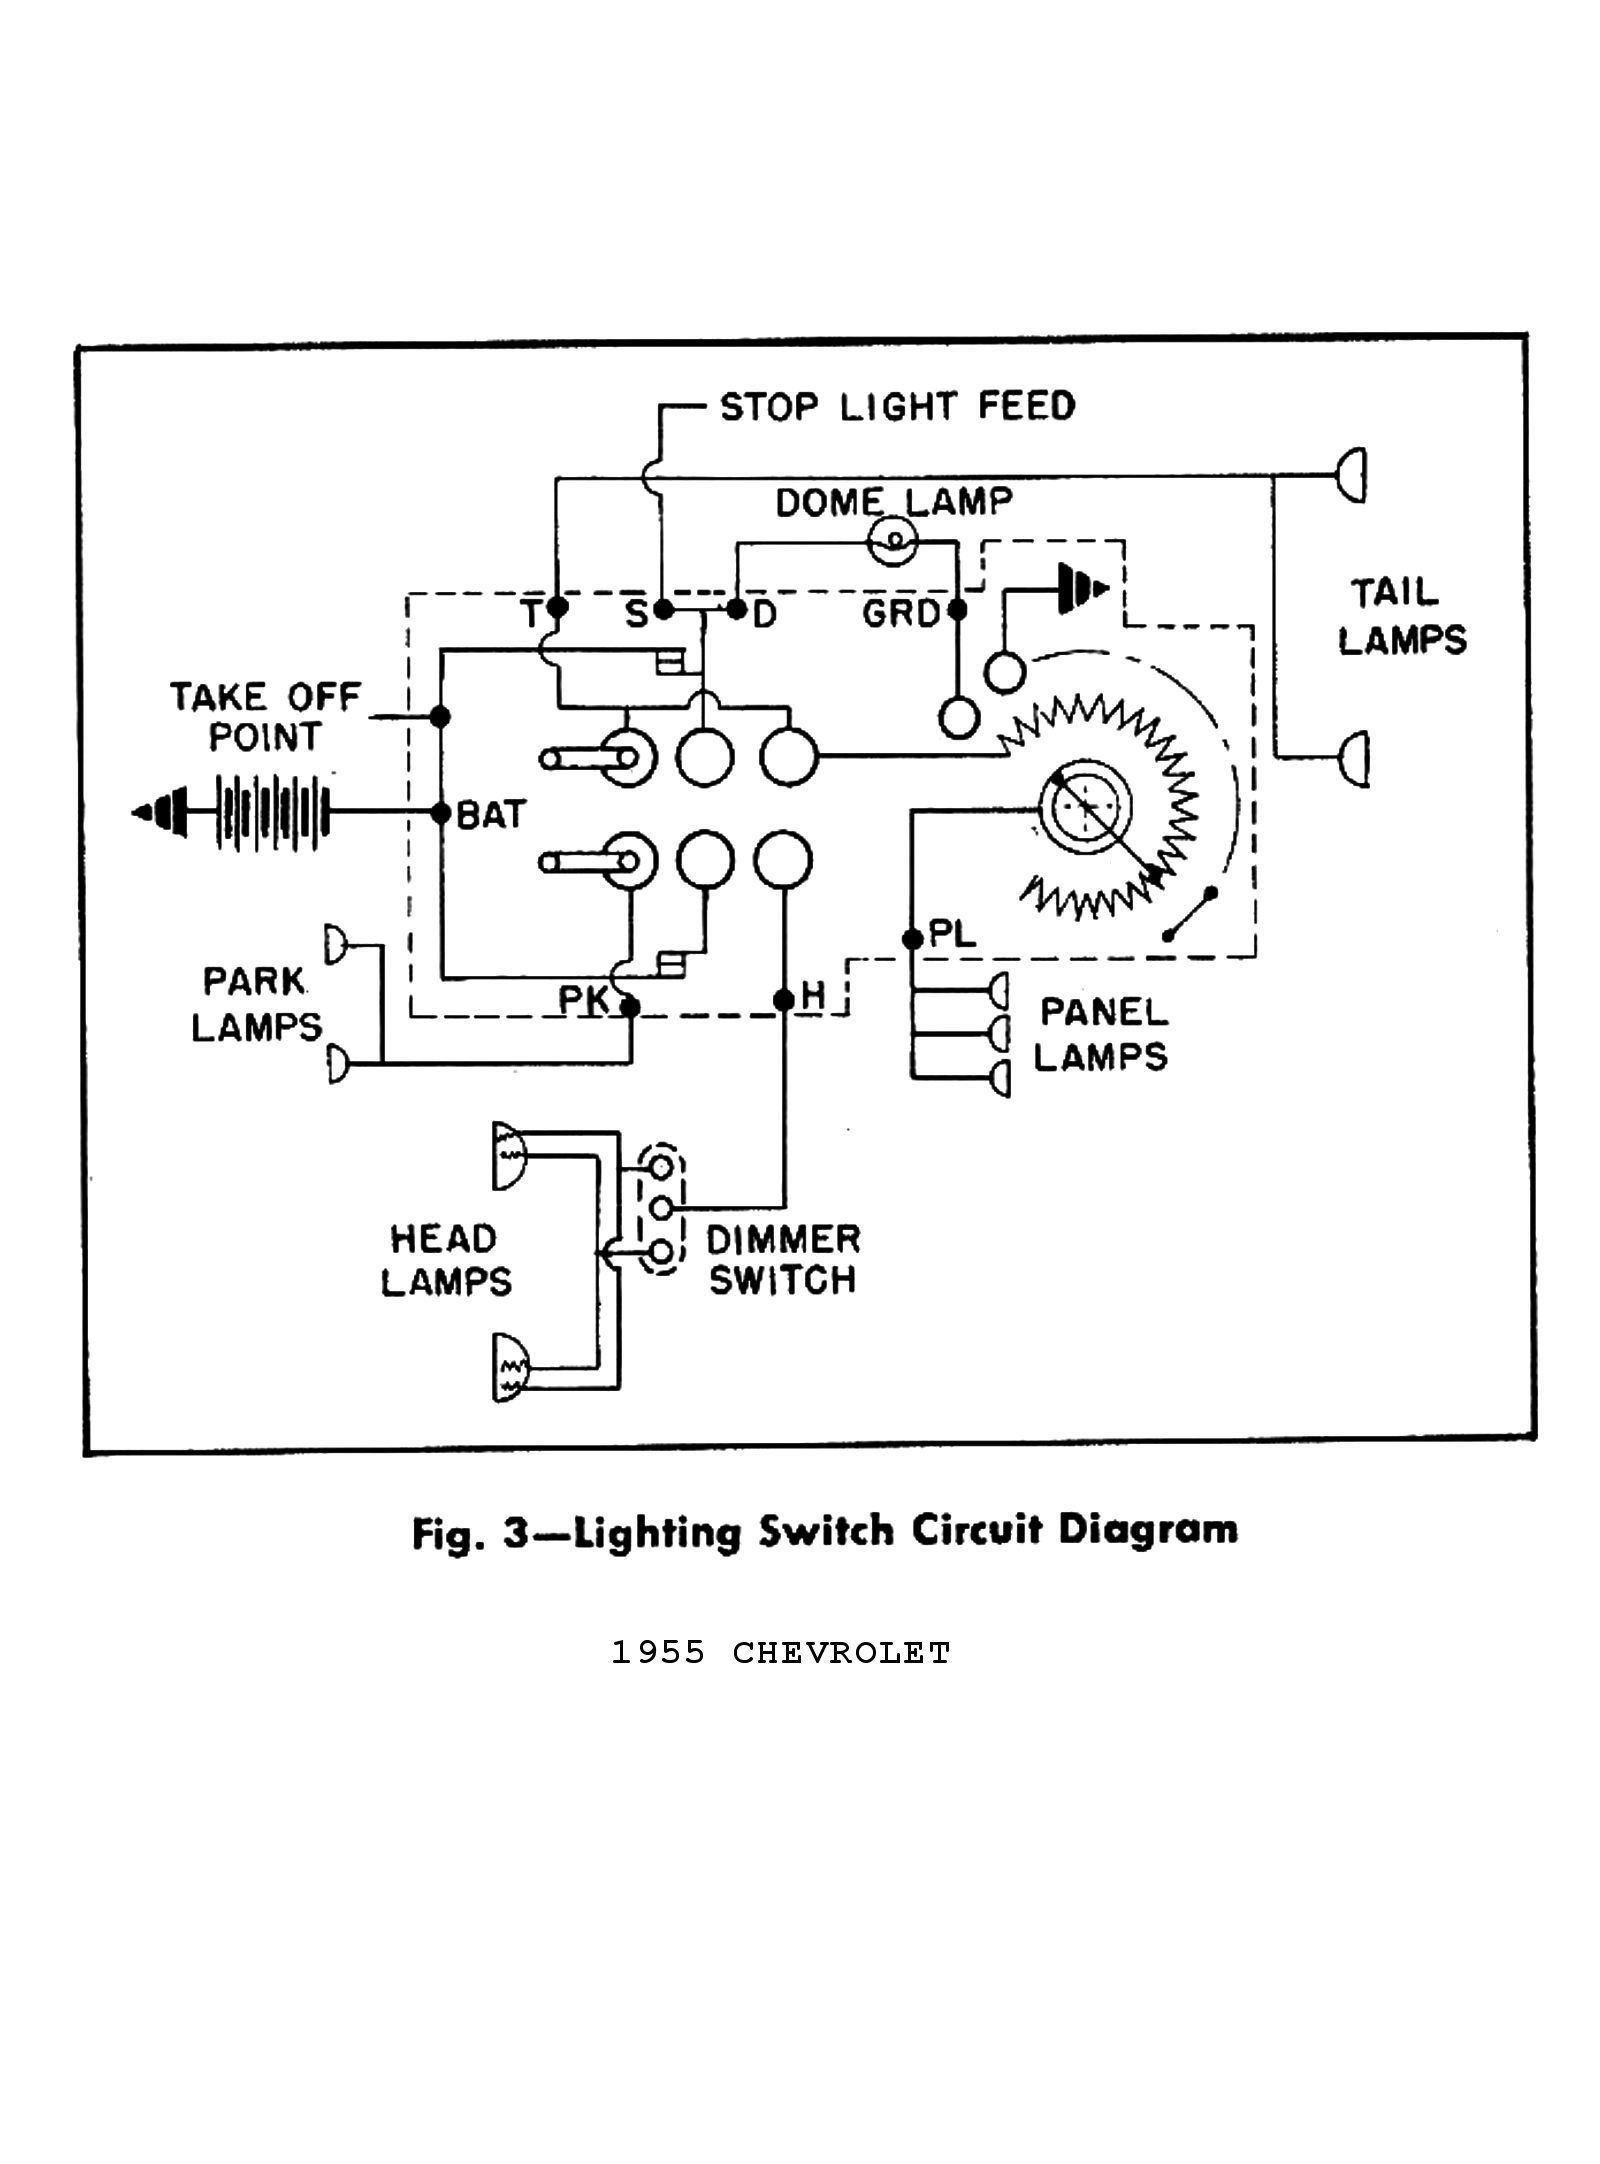 Universal Ignition Switch Wiring Diagram Inspirational